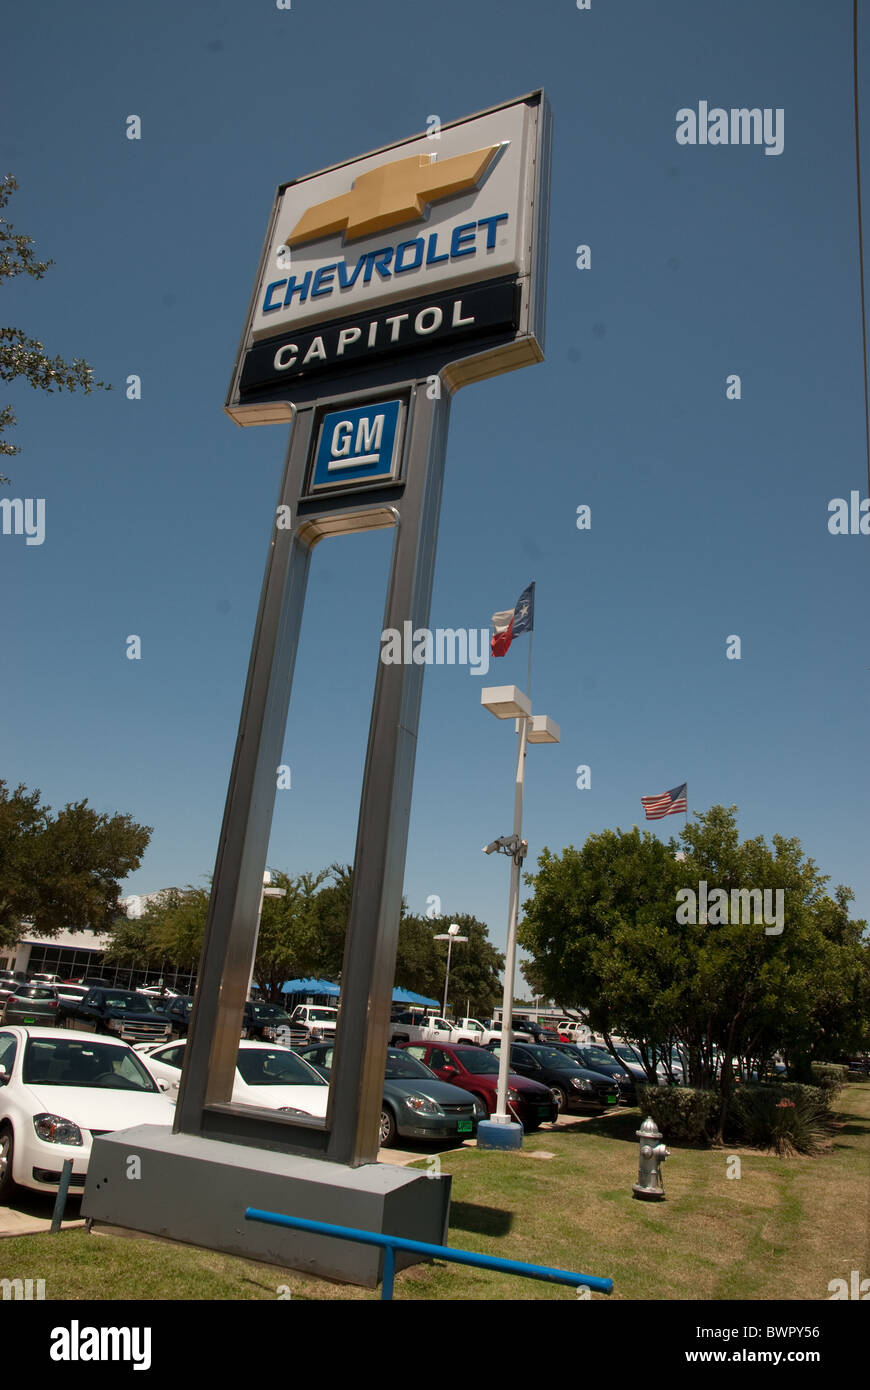 Large Capital Chevrolet sign on standards shows Chevy and General Motors logos in front of dealership in Austin, - Stock Image